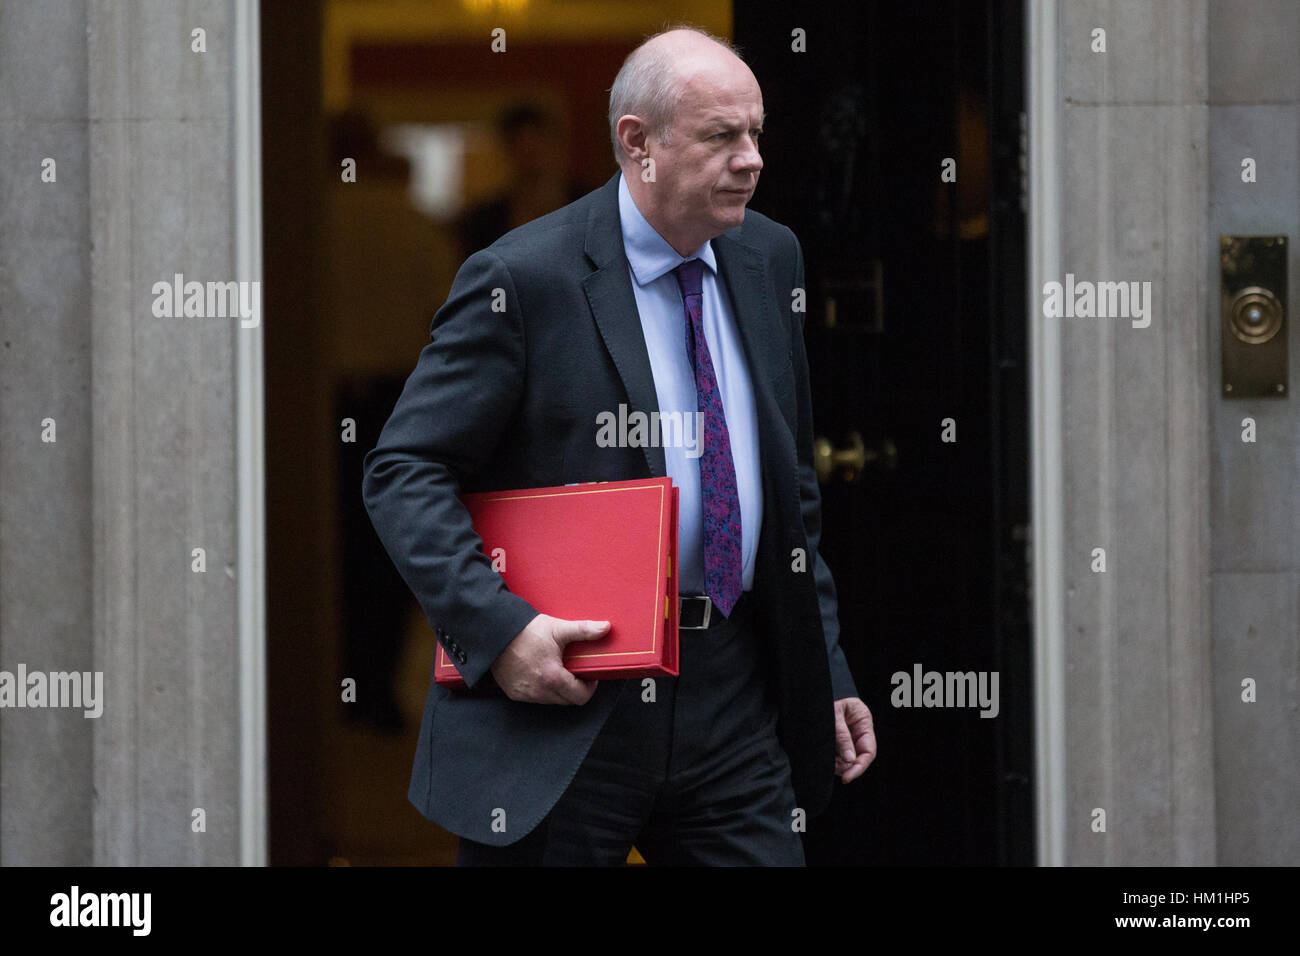 London, UK. 31st Jan, 2017. Damian Green MP, Secretary of State for Work and Pensions, leaves 10 Downing Street - Stock Image